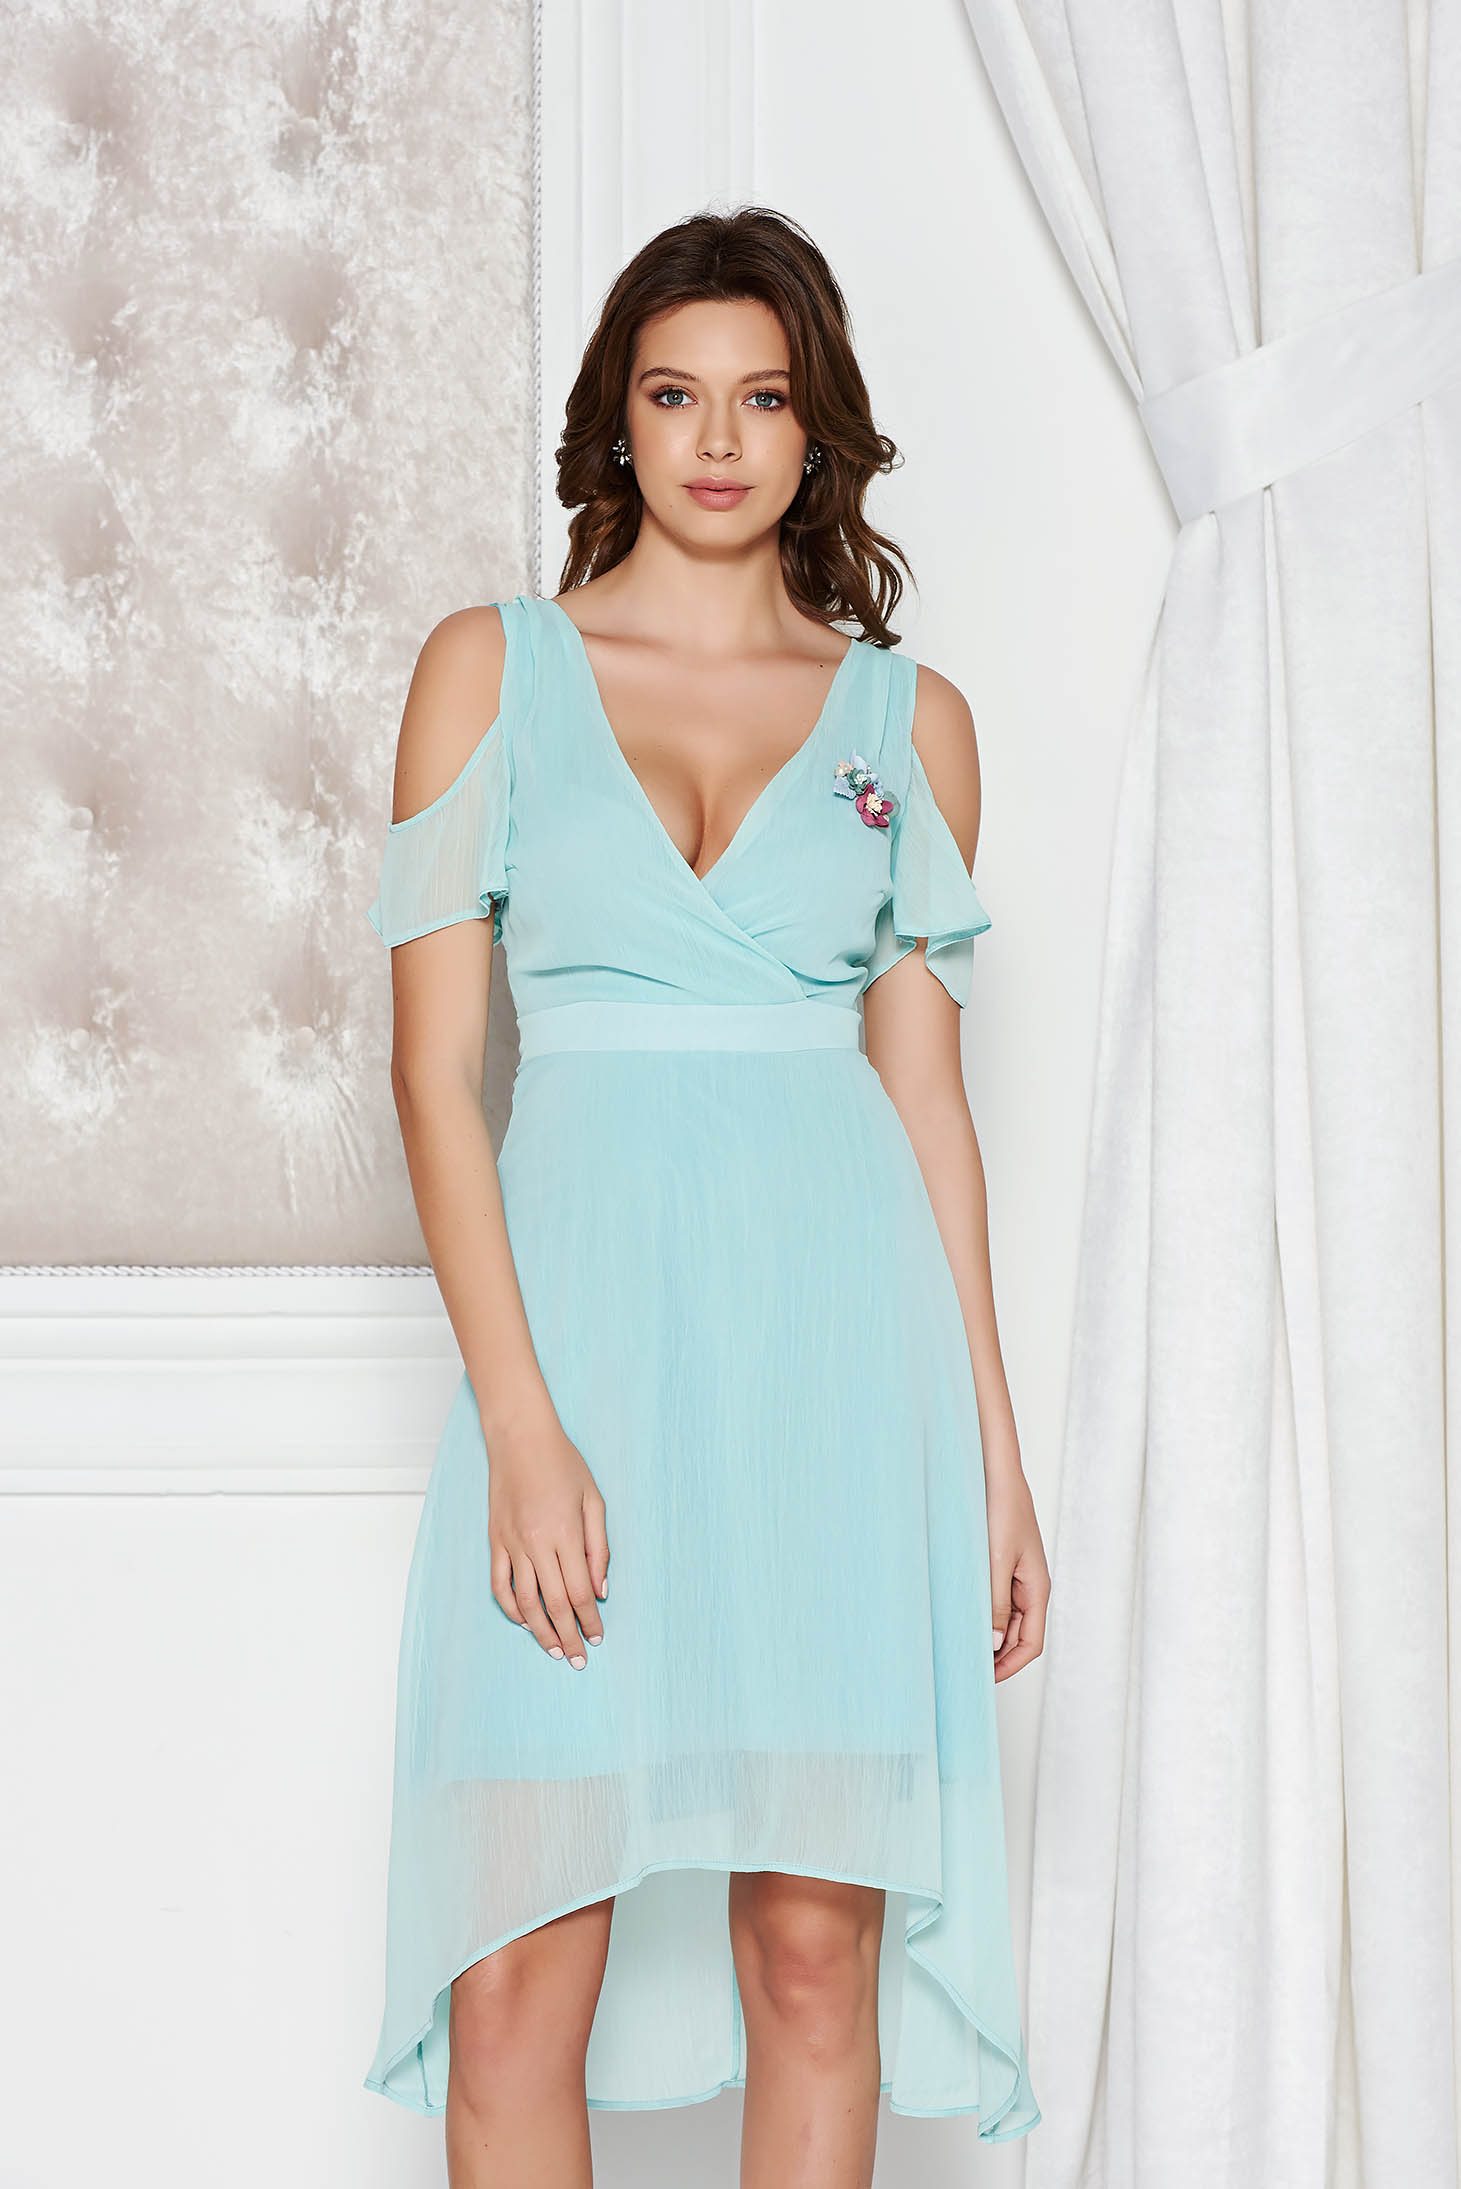 StarShinerS mint occasional asymmetrical dress transparent chiffon fabric with inside lining both shoulders cut out